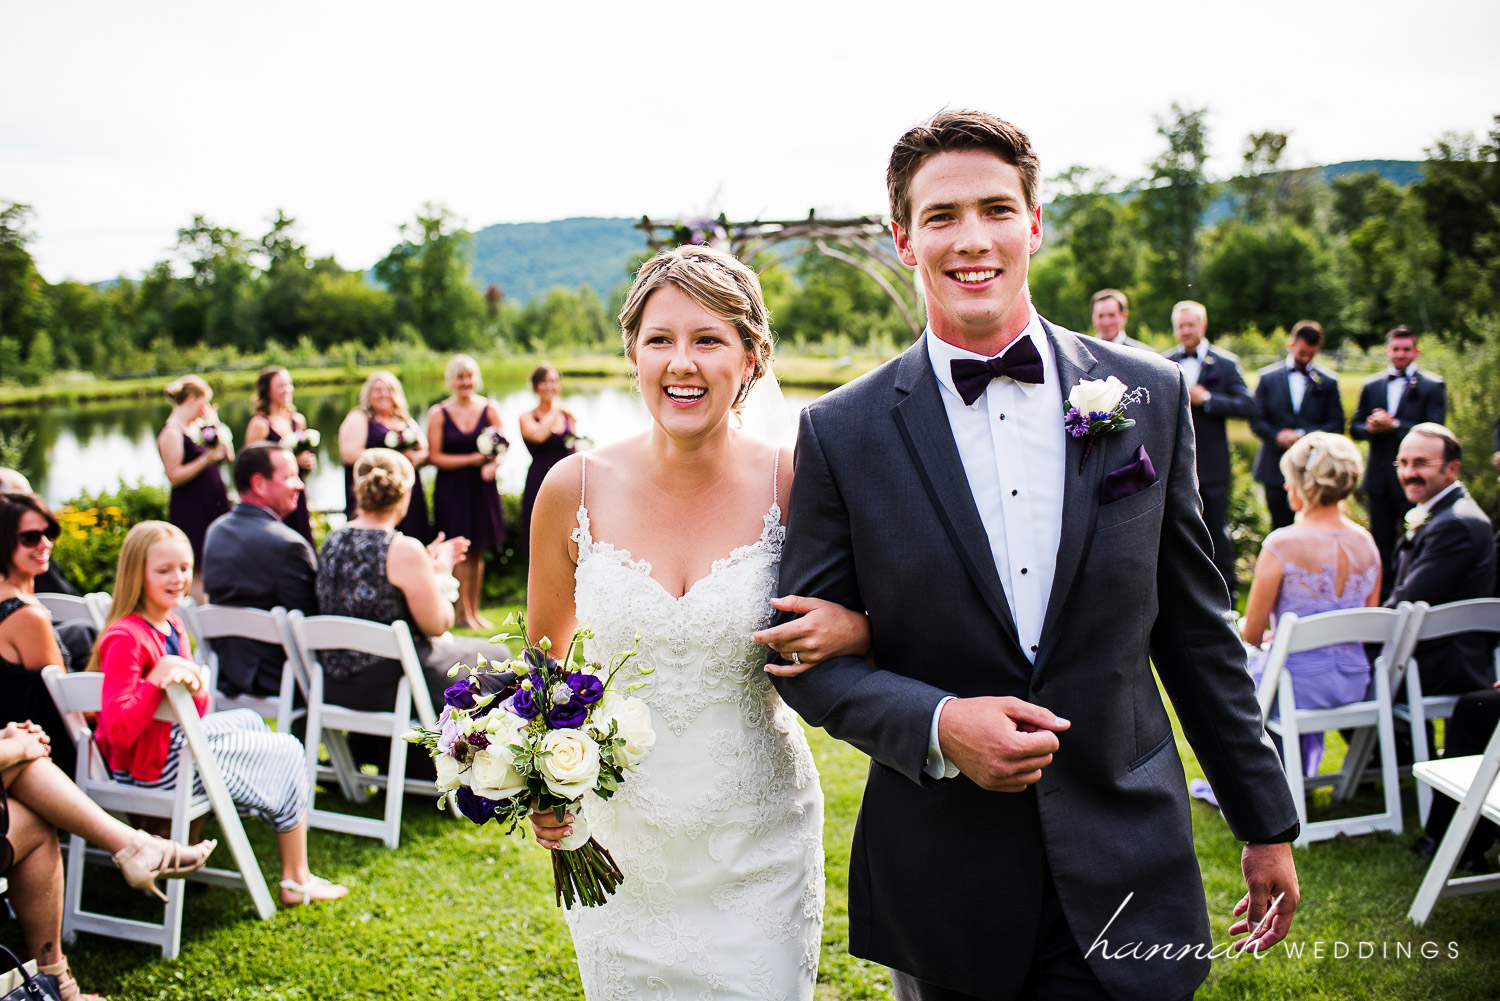 Meghan-Craig Vermont Wedding-016